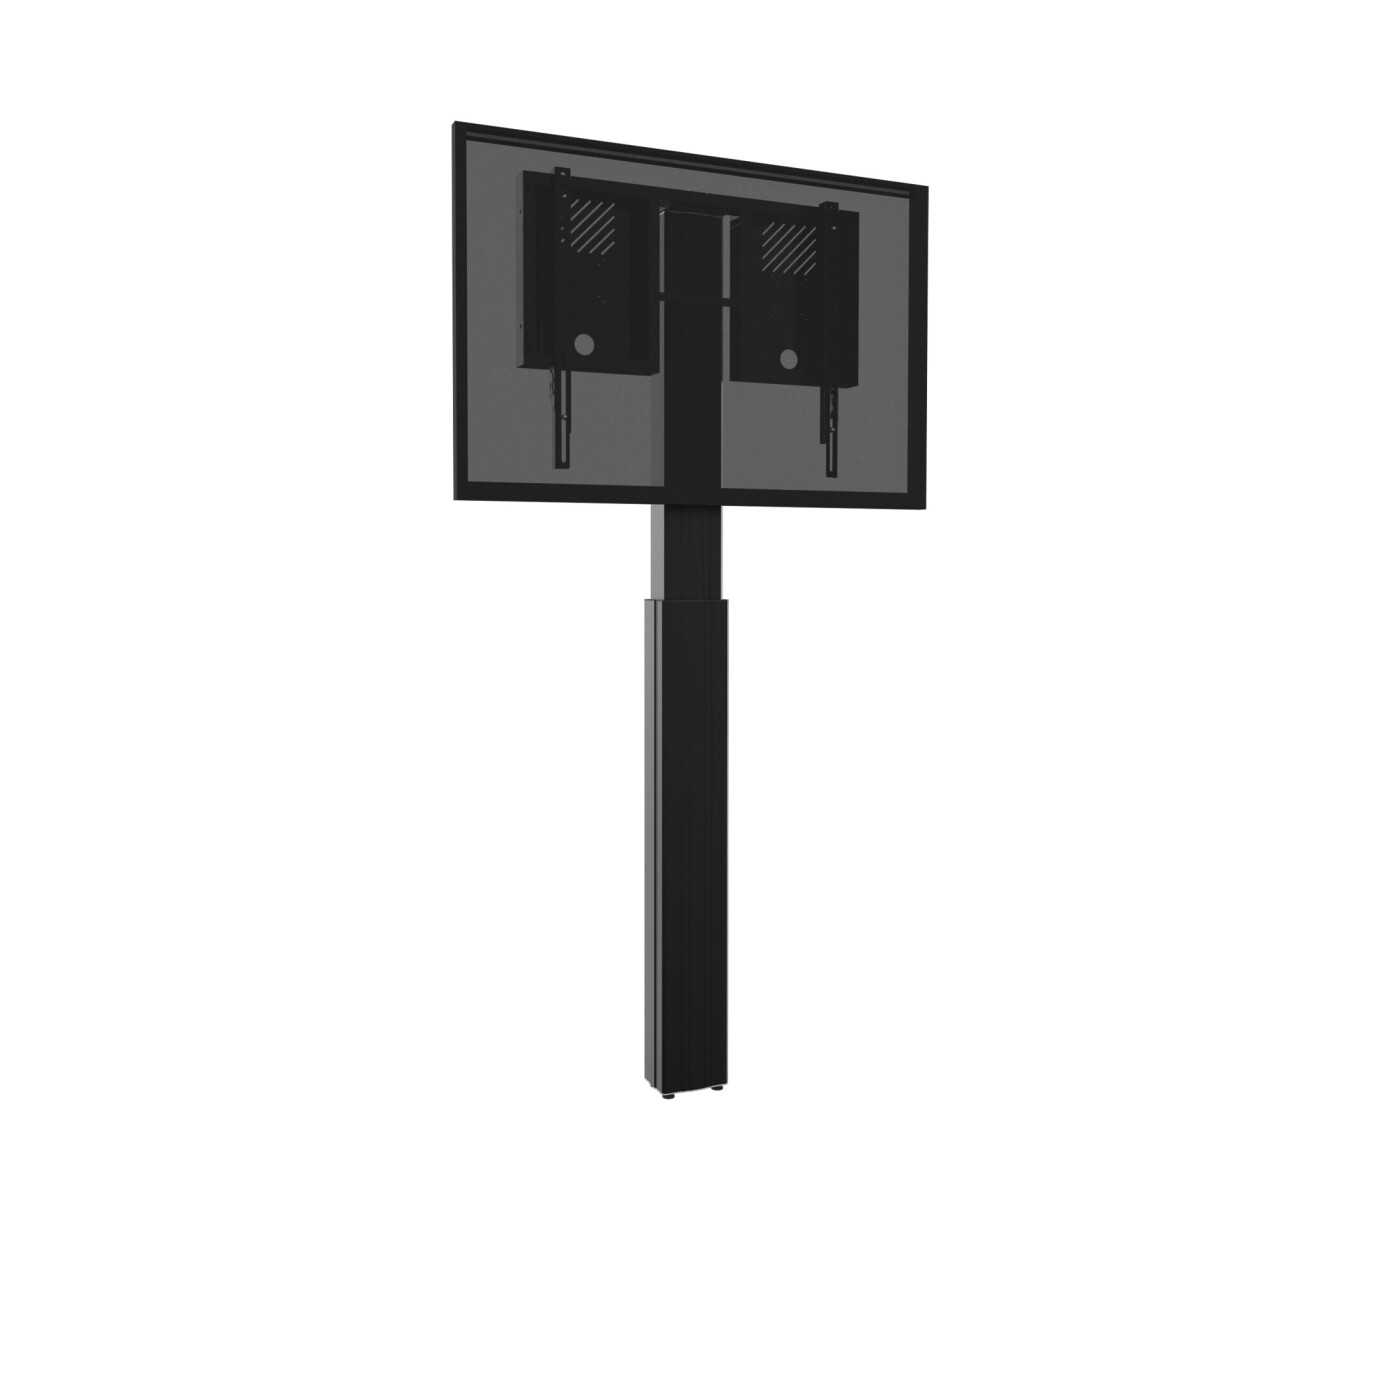 celexon Expert electric height adjustable display stand Adjust-4286WB with wall mounting - 90cm